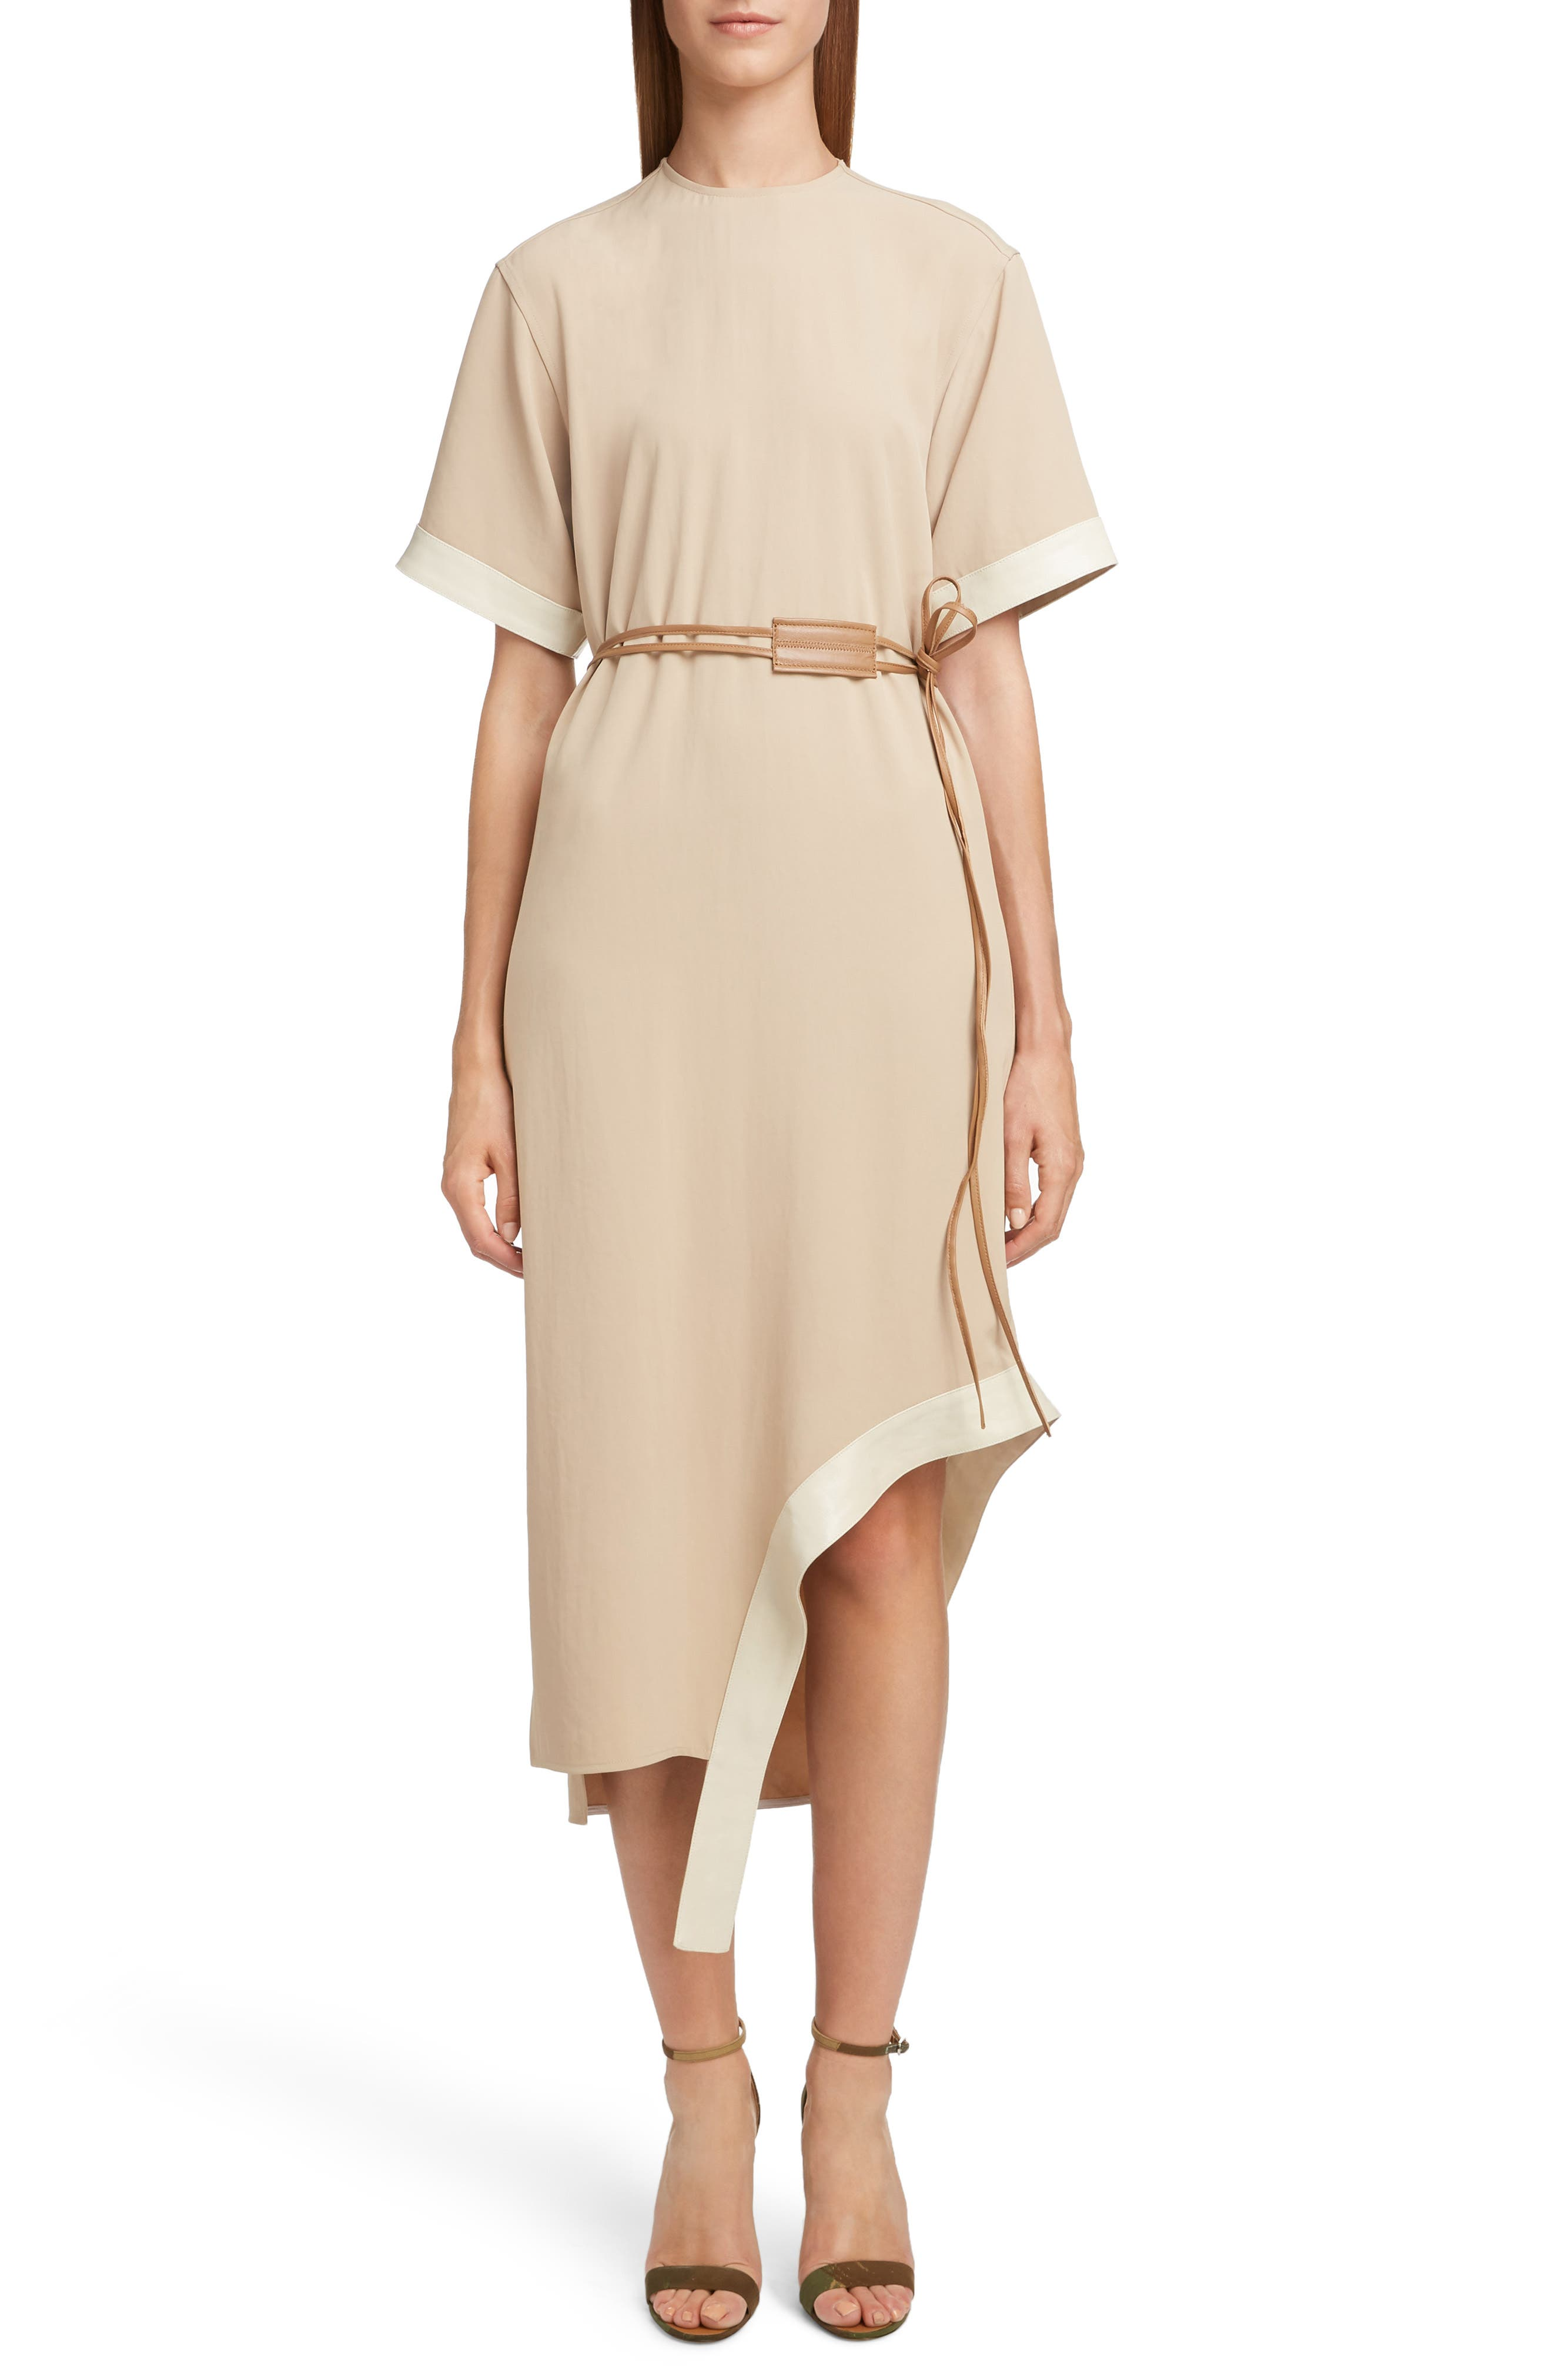 Victoria Beckham Leather Belt Asymmetrical Dress, US / 10 UK - Beige